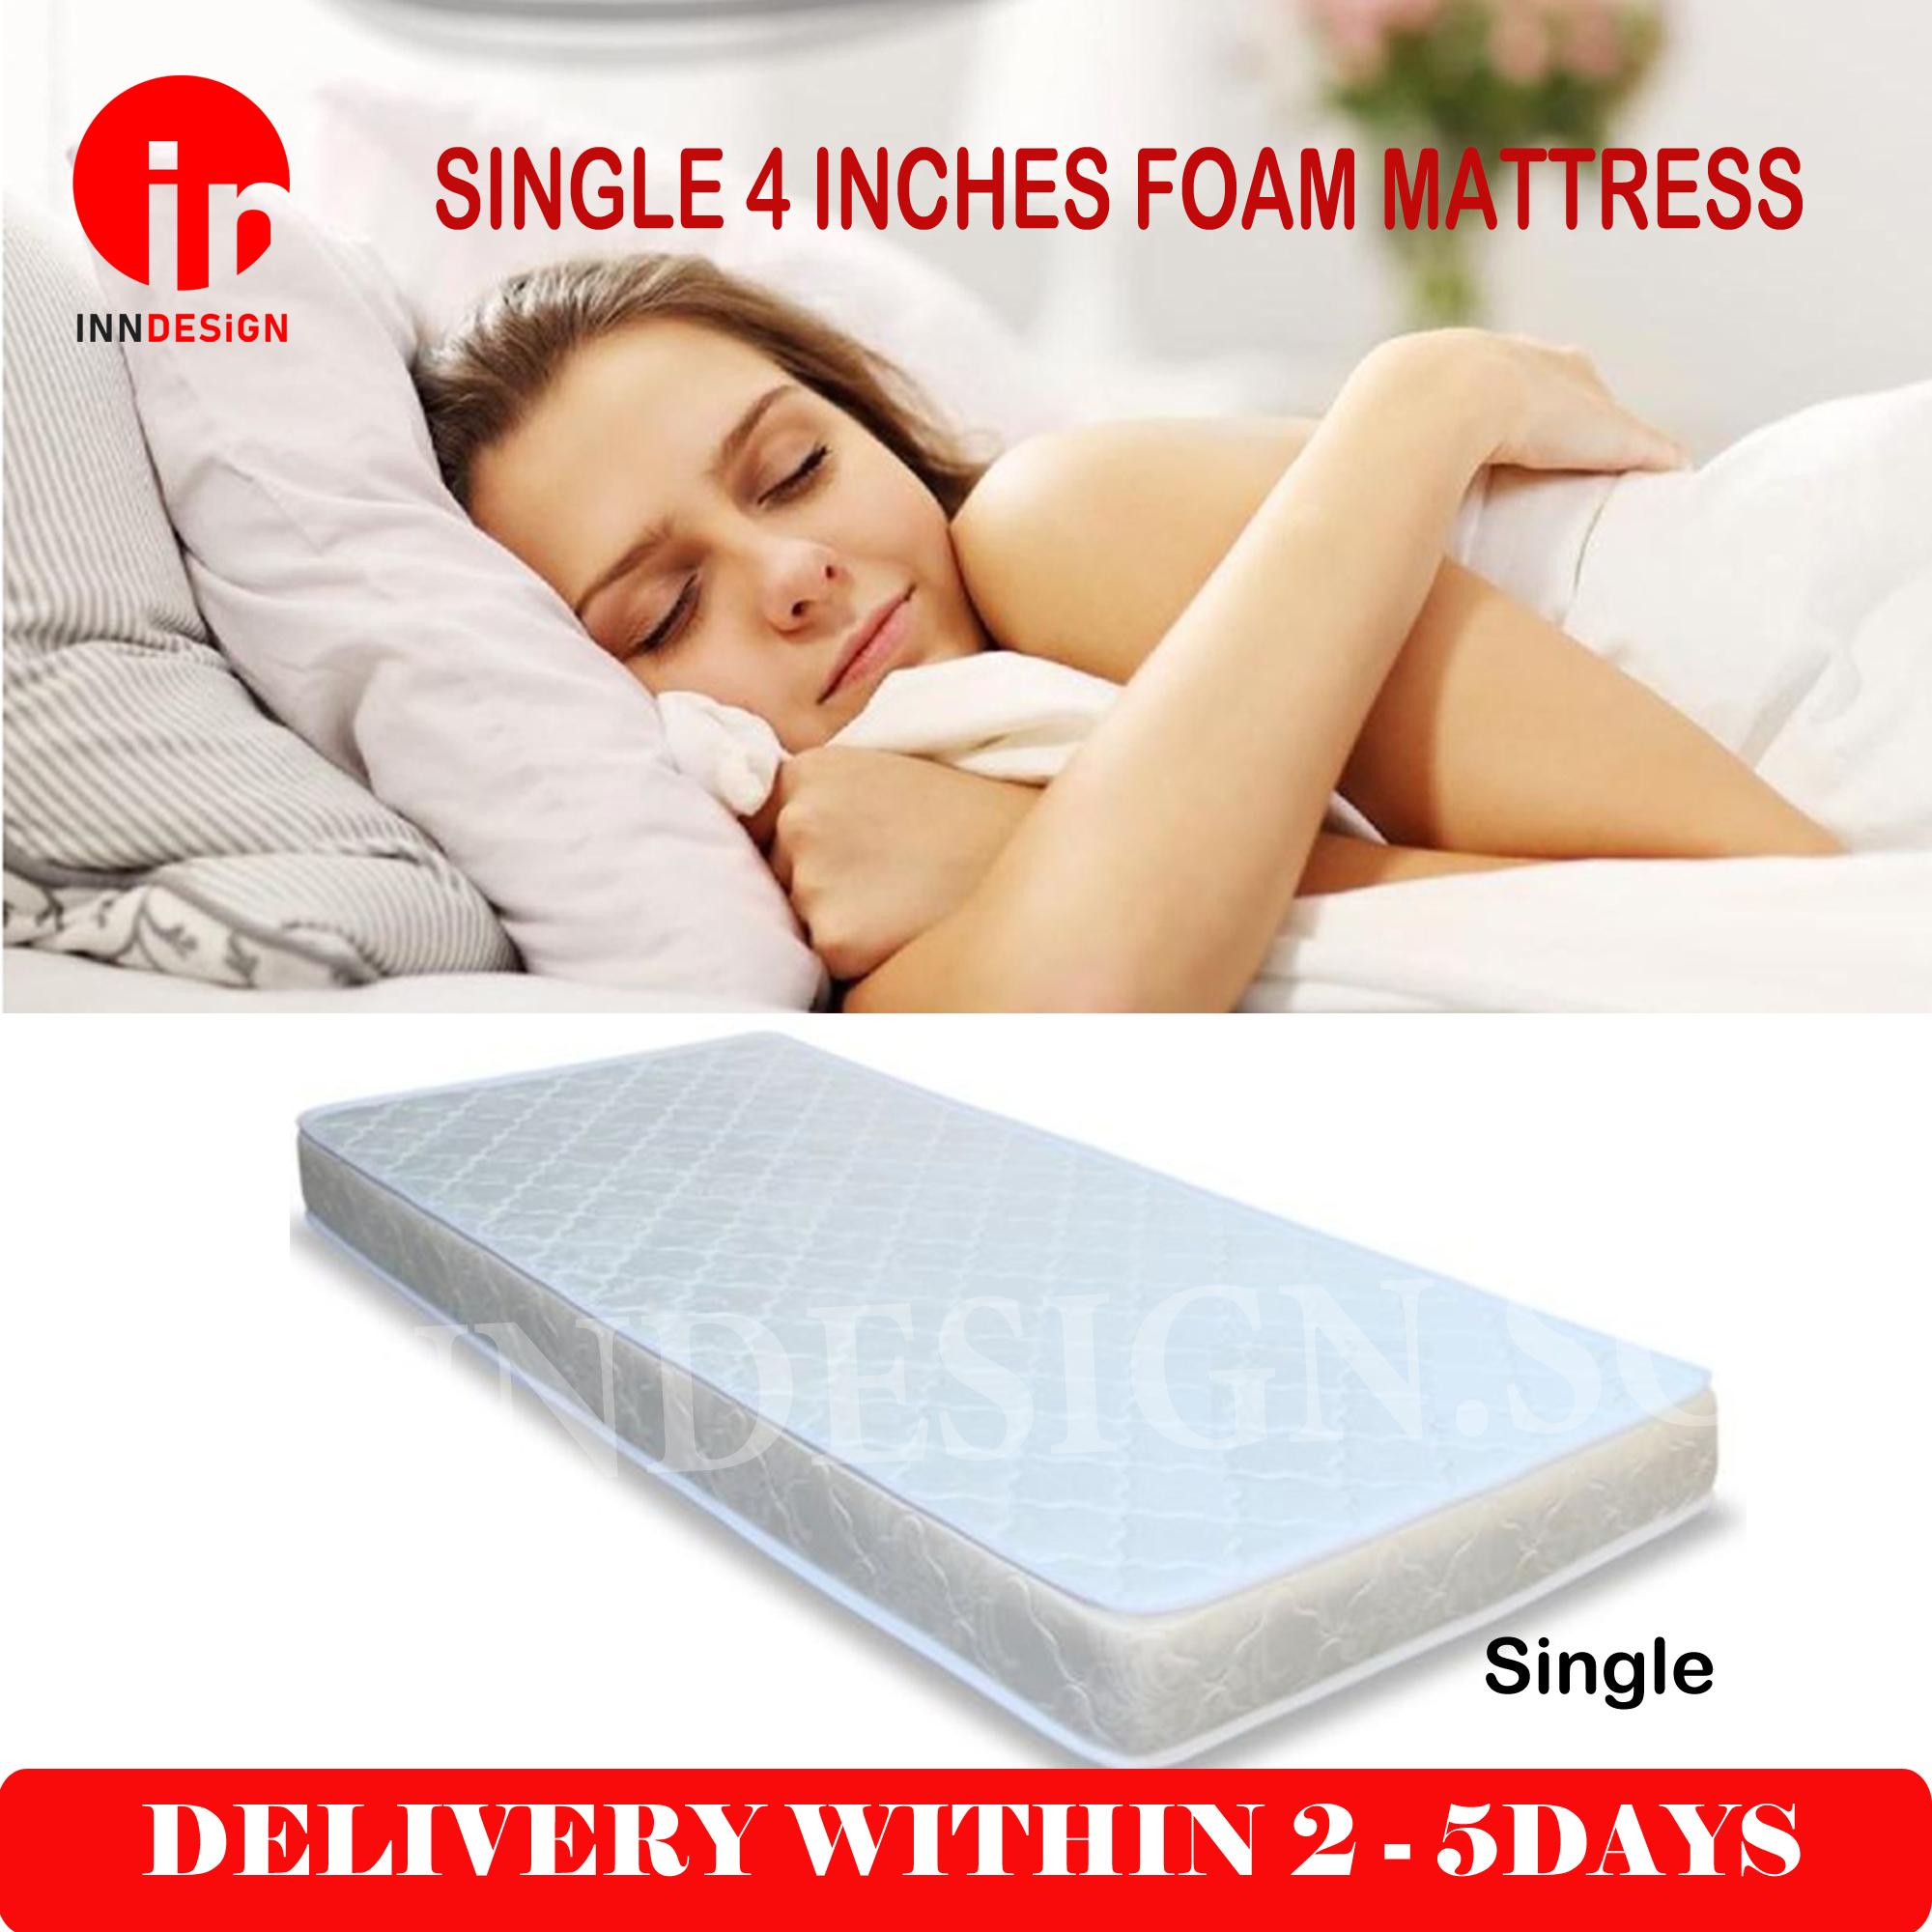 "Single 4"" Foam Mattress"